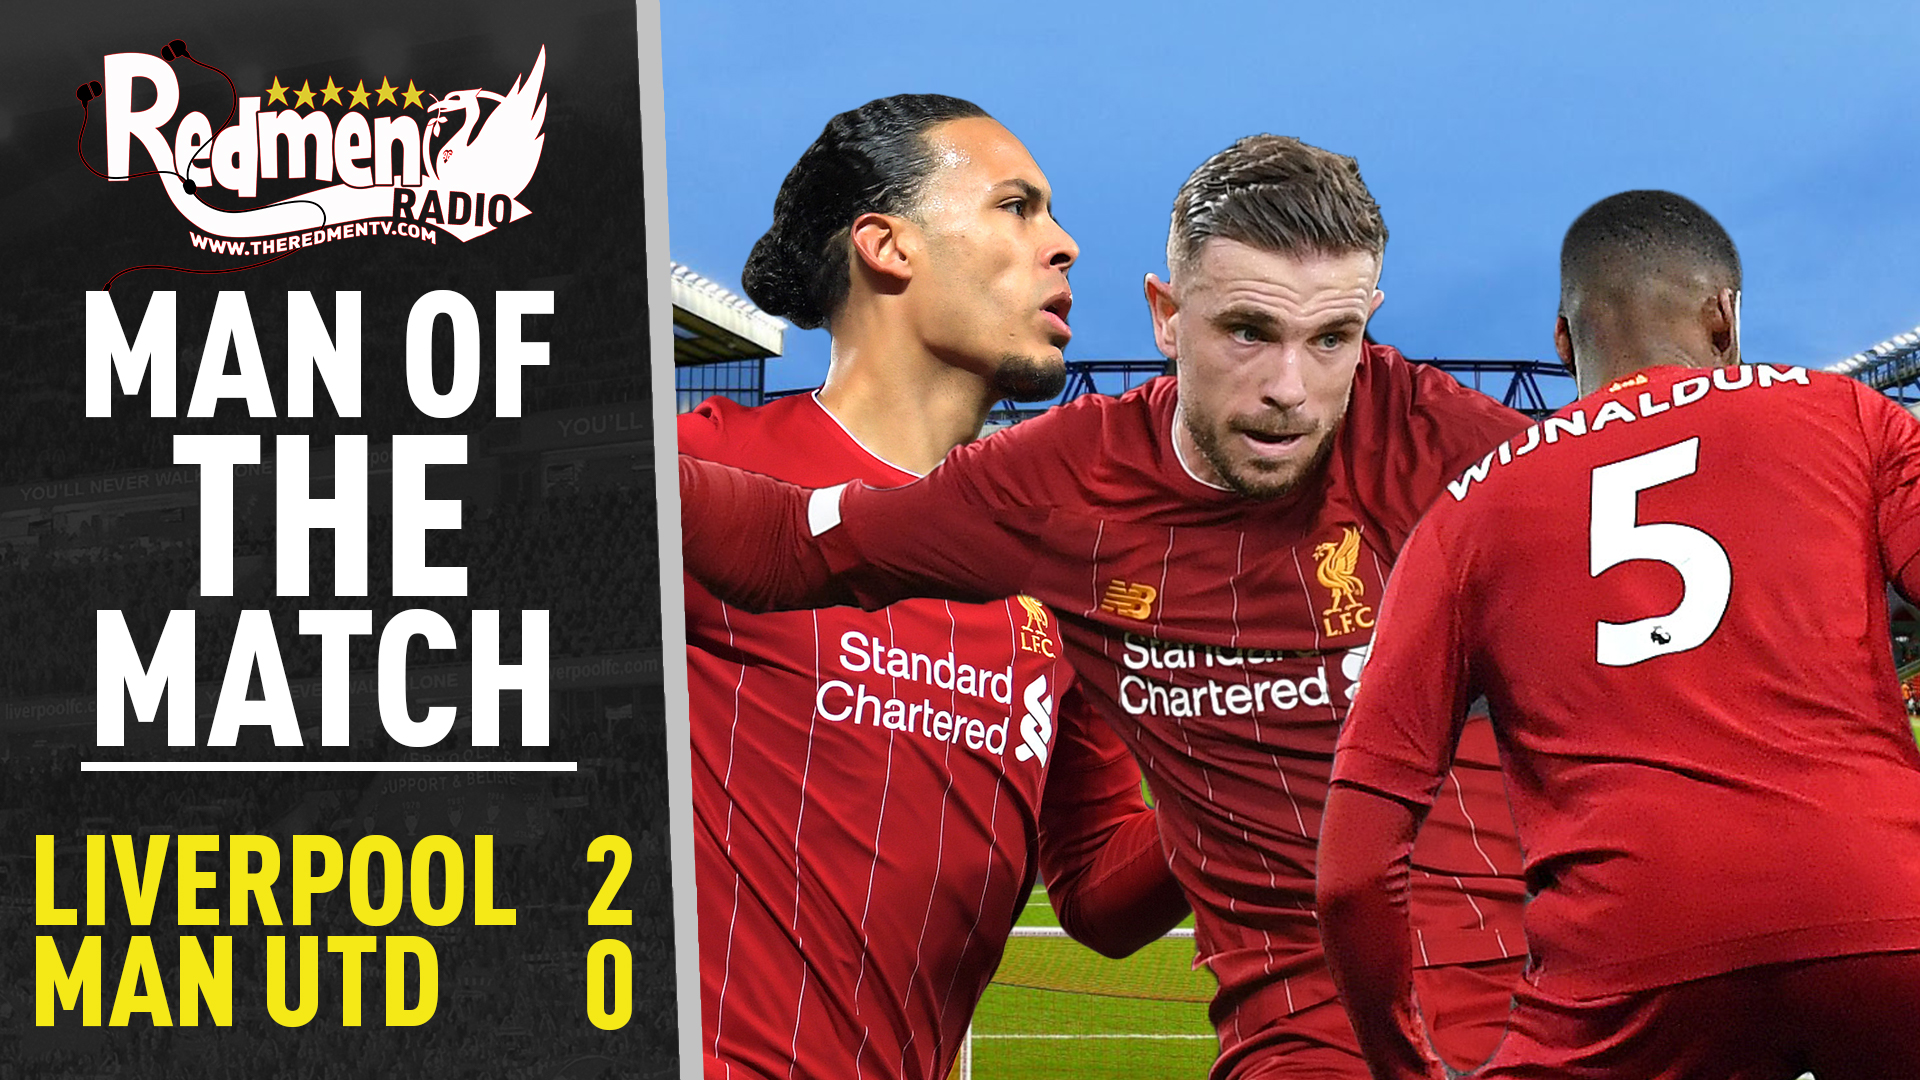 Liverpool 2-0 Man United | Man of the Match Podcast - The Redmen TV